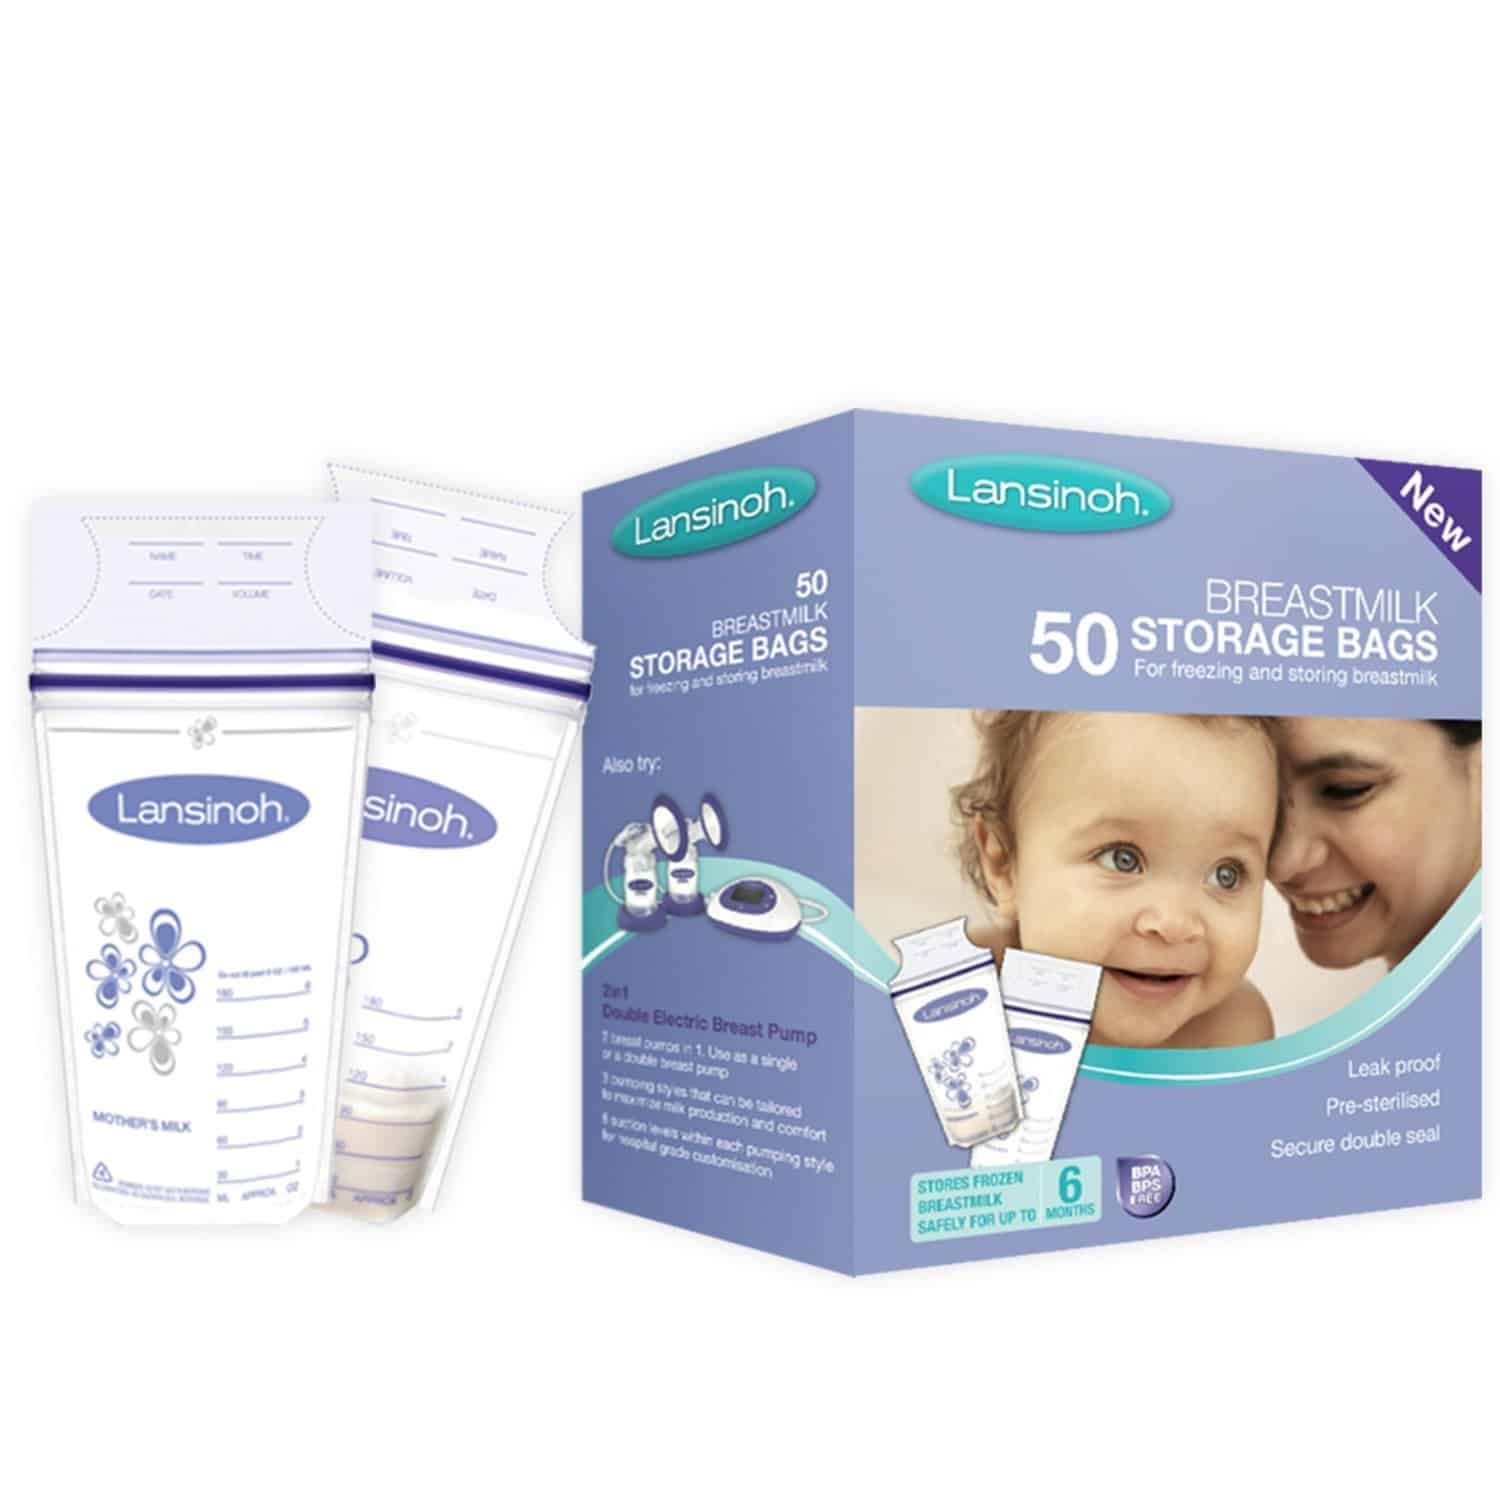 lansinoh breastmilk storage bags in reviews